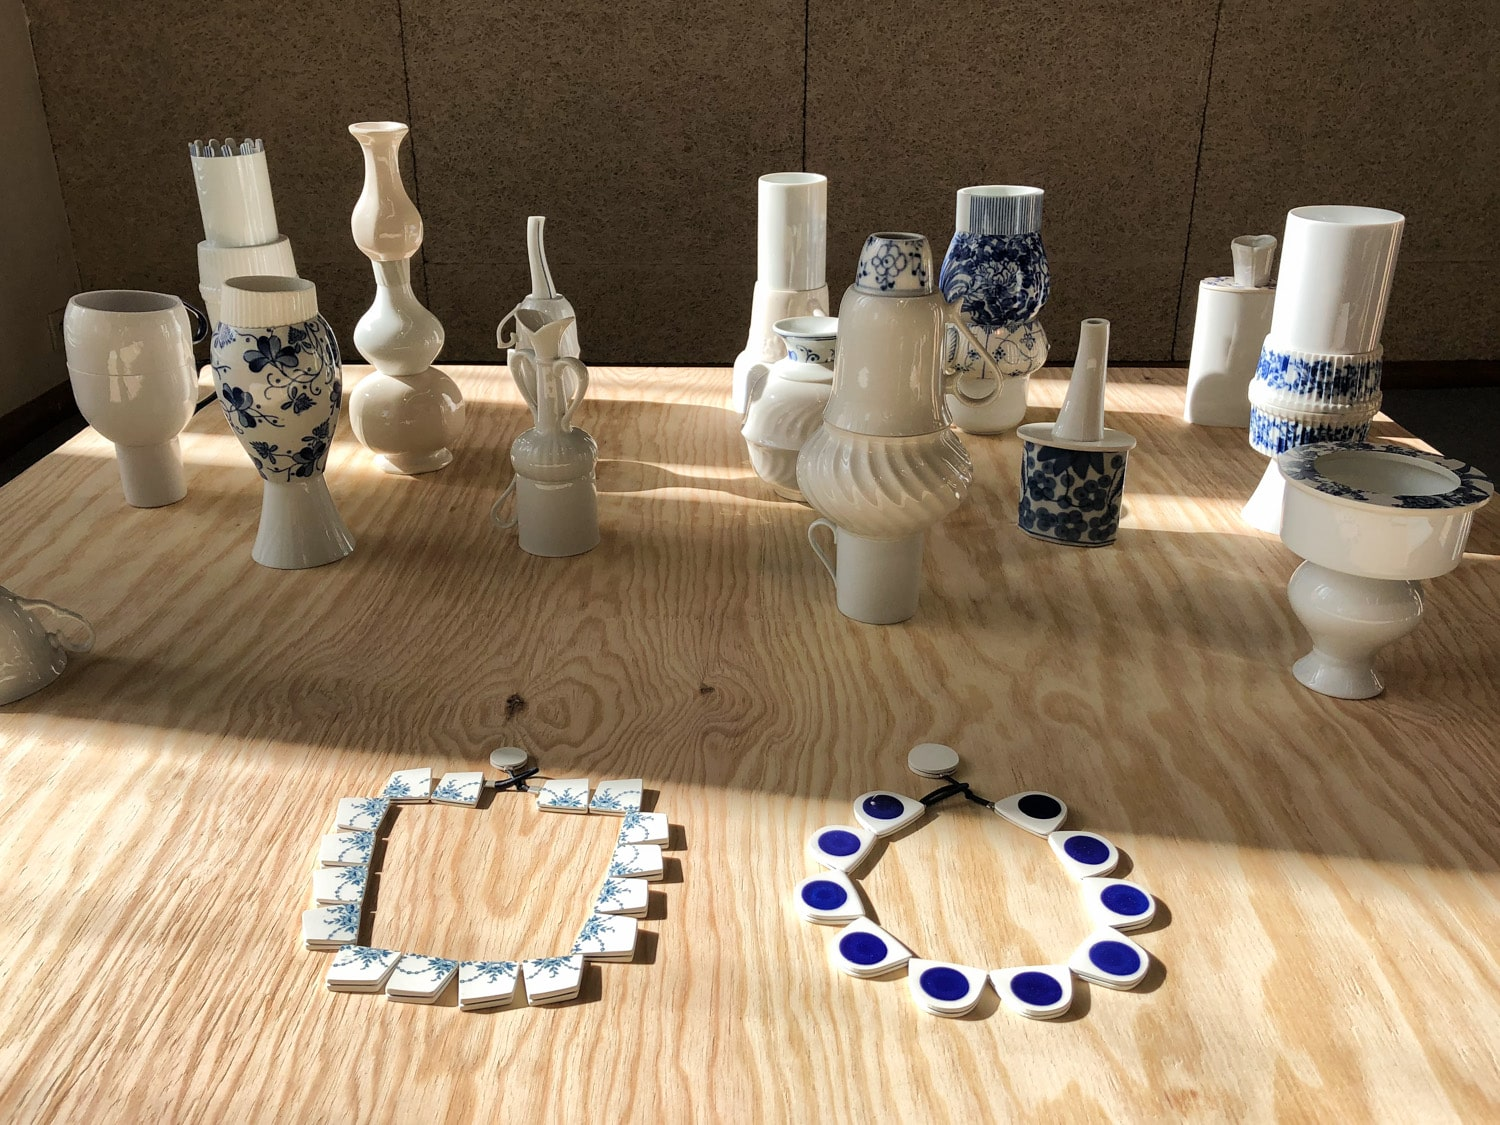 Julie Decubber's jewels and ceramics from old crockery